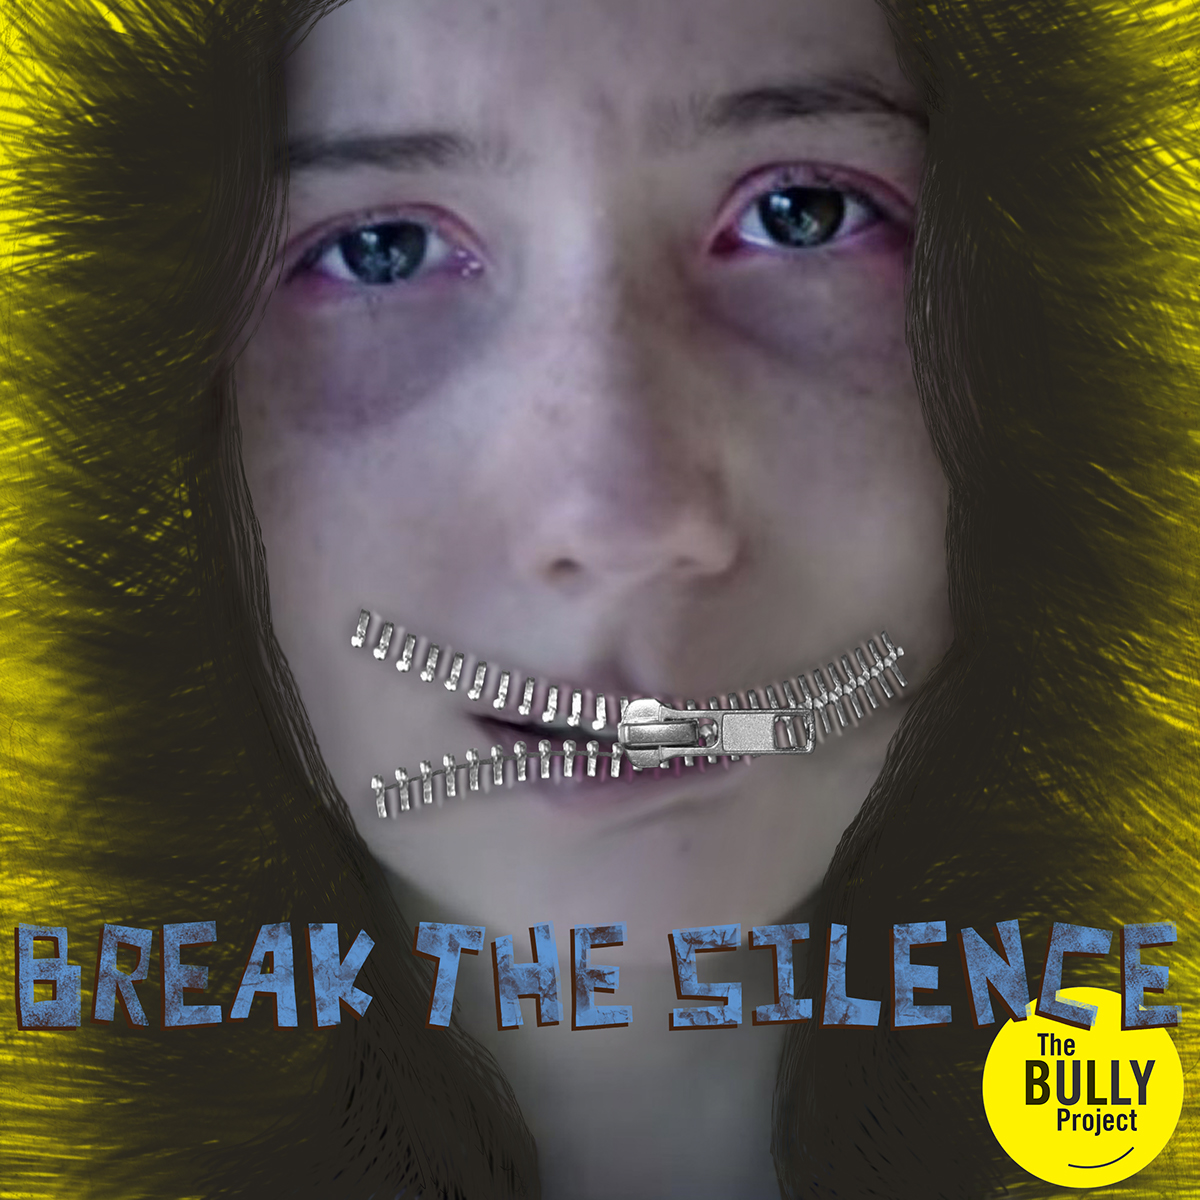 The Bully Project Mural Bully Project Mural bully face bullied Good Cause non profit movement bully awareness